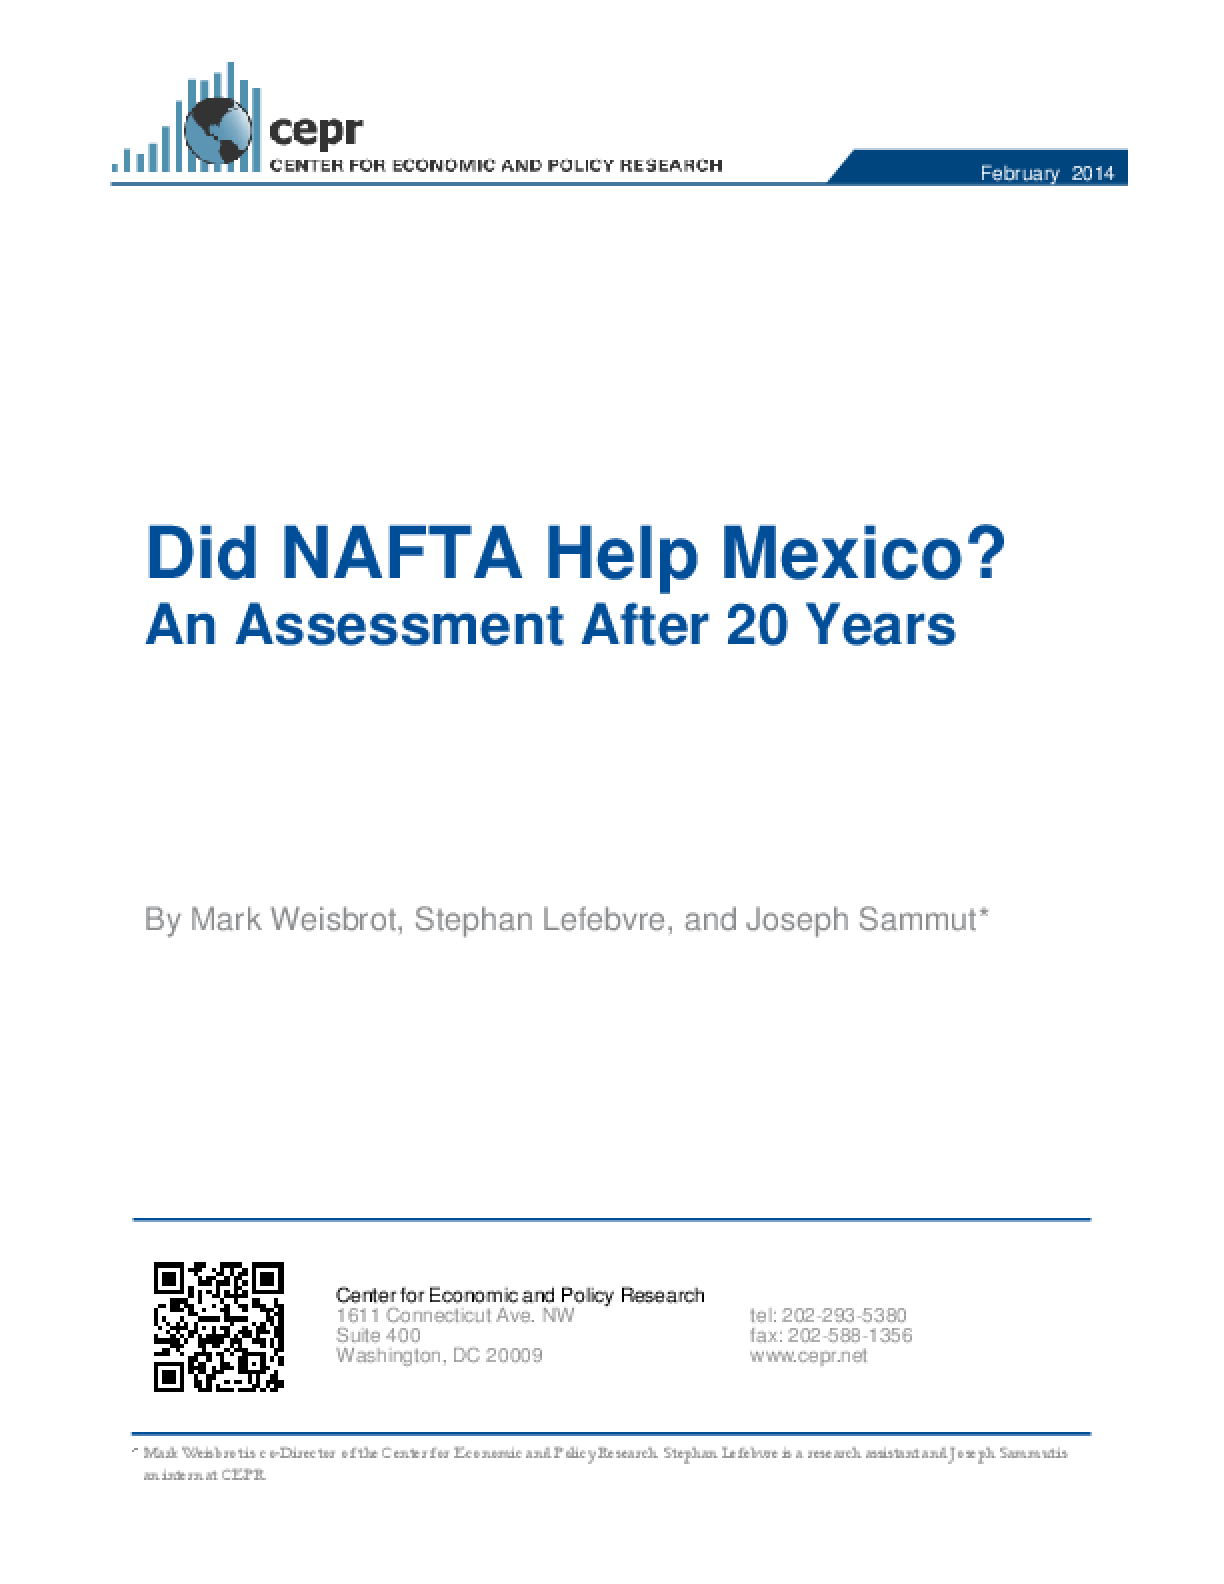 Did NAFTA Help Mexico? An Assessment After 20 Years